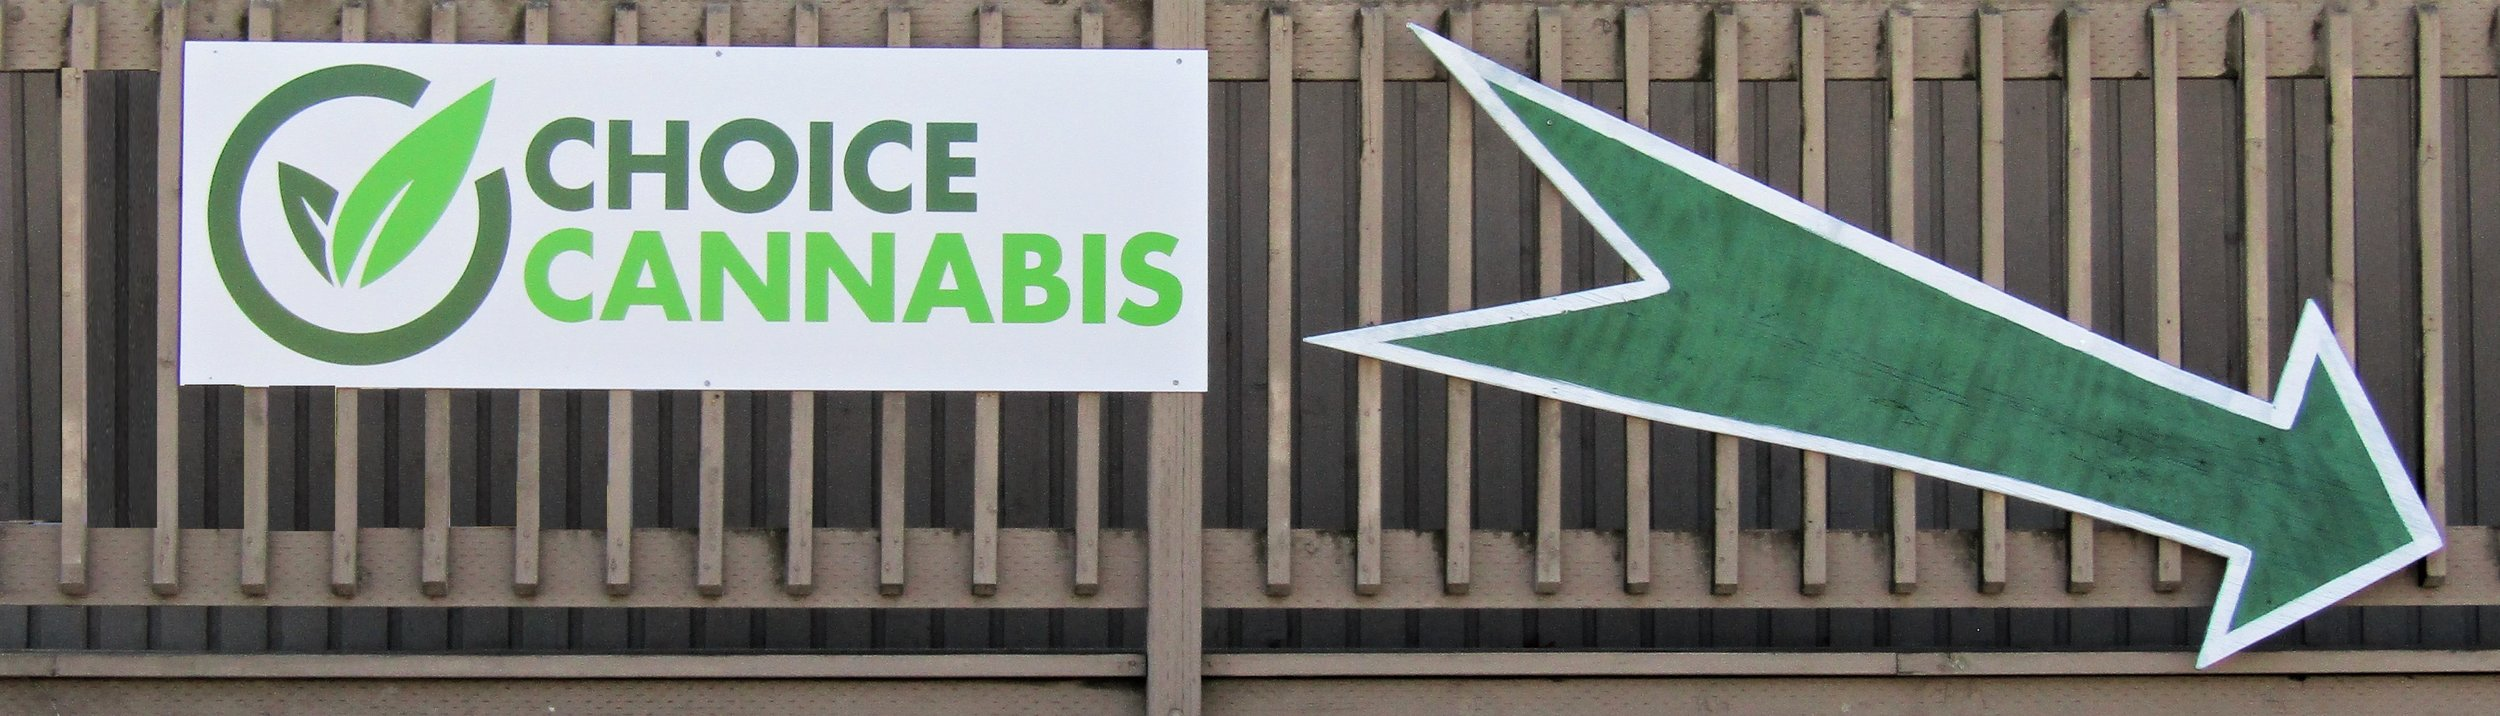 Choice Cannabis Store Front Sign